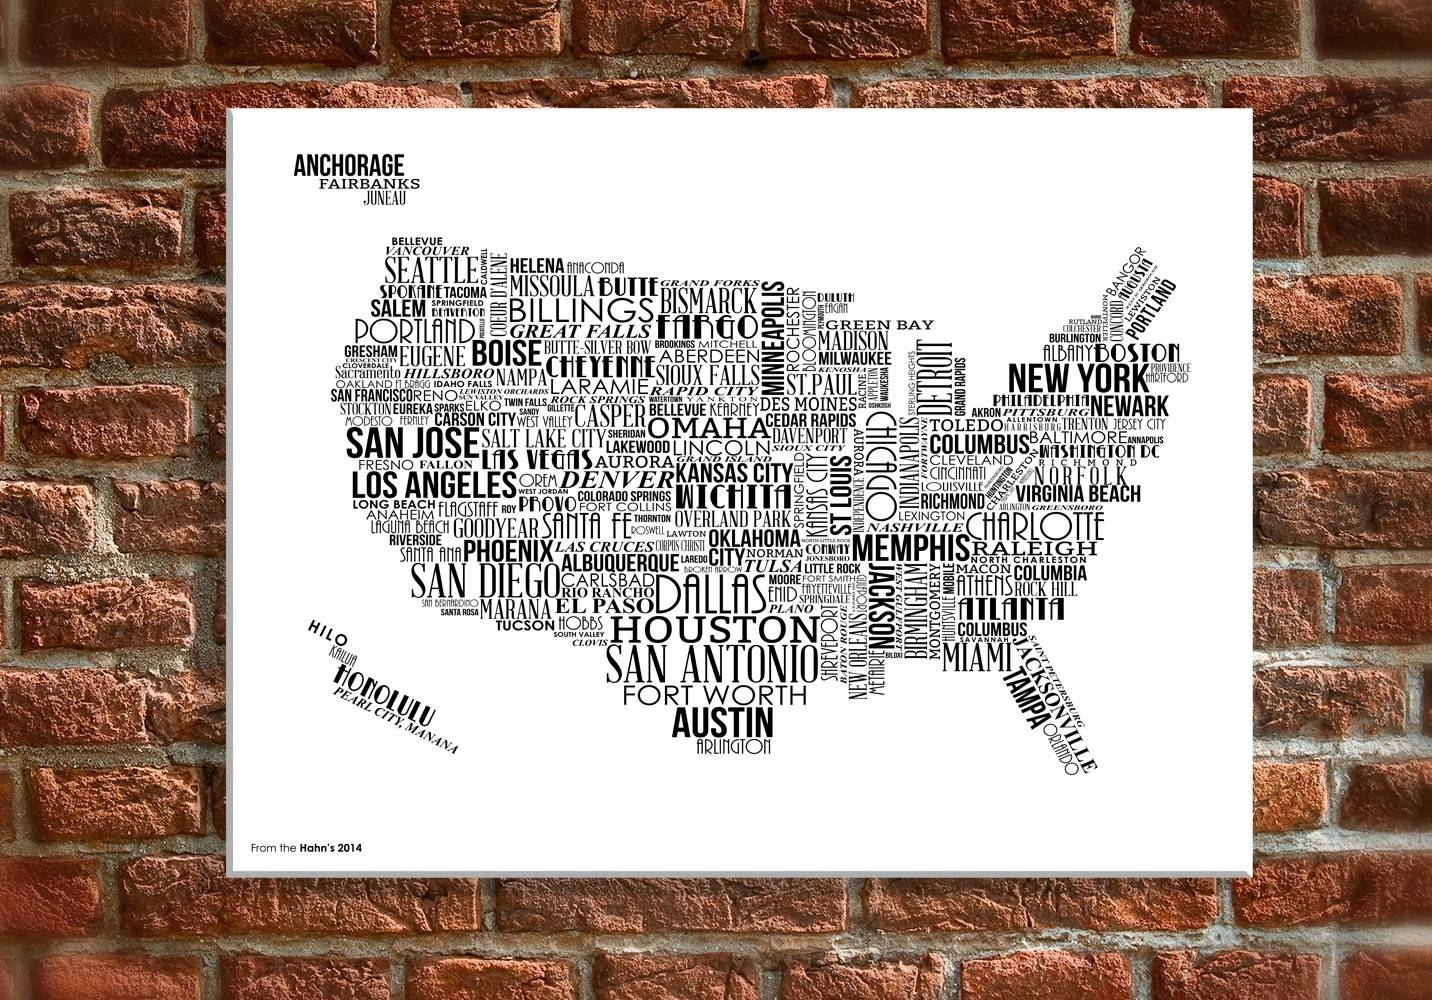 "16 X 20"" Canvas Wall Art – Usa Map With White Text Within Best And Newest Us Map Wall Art (View 7 of 20)"